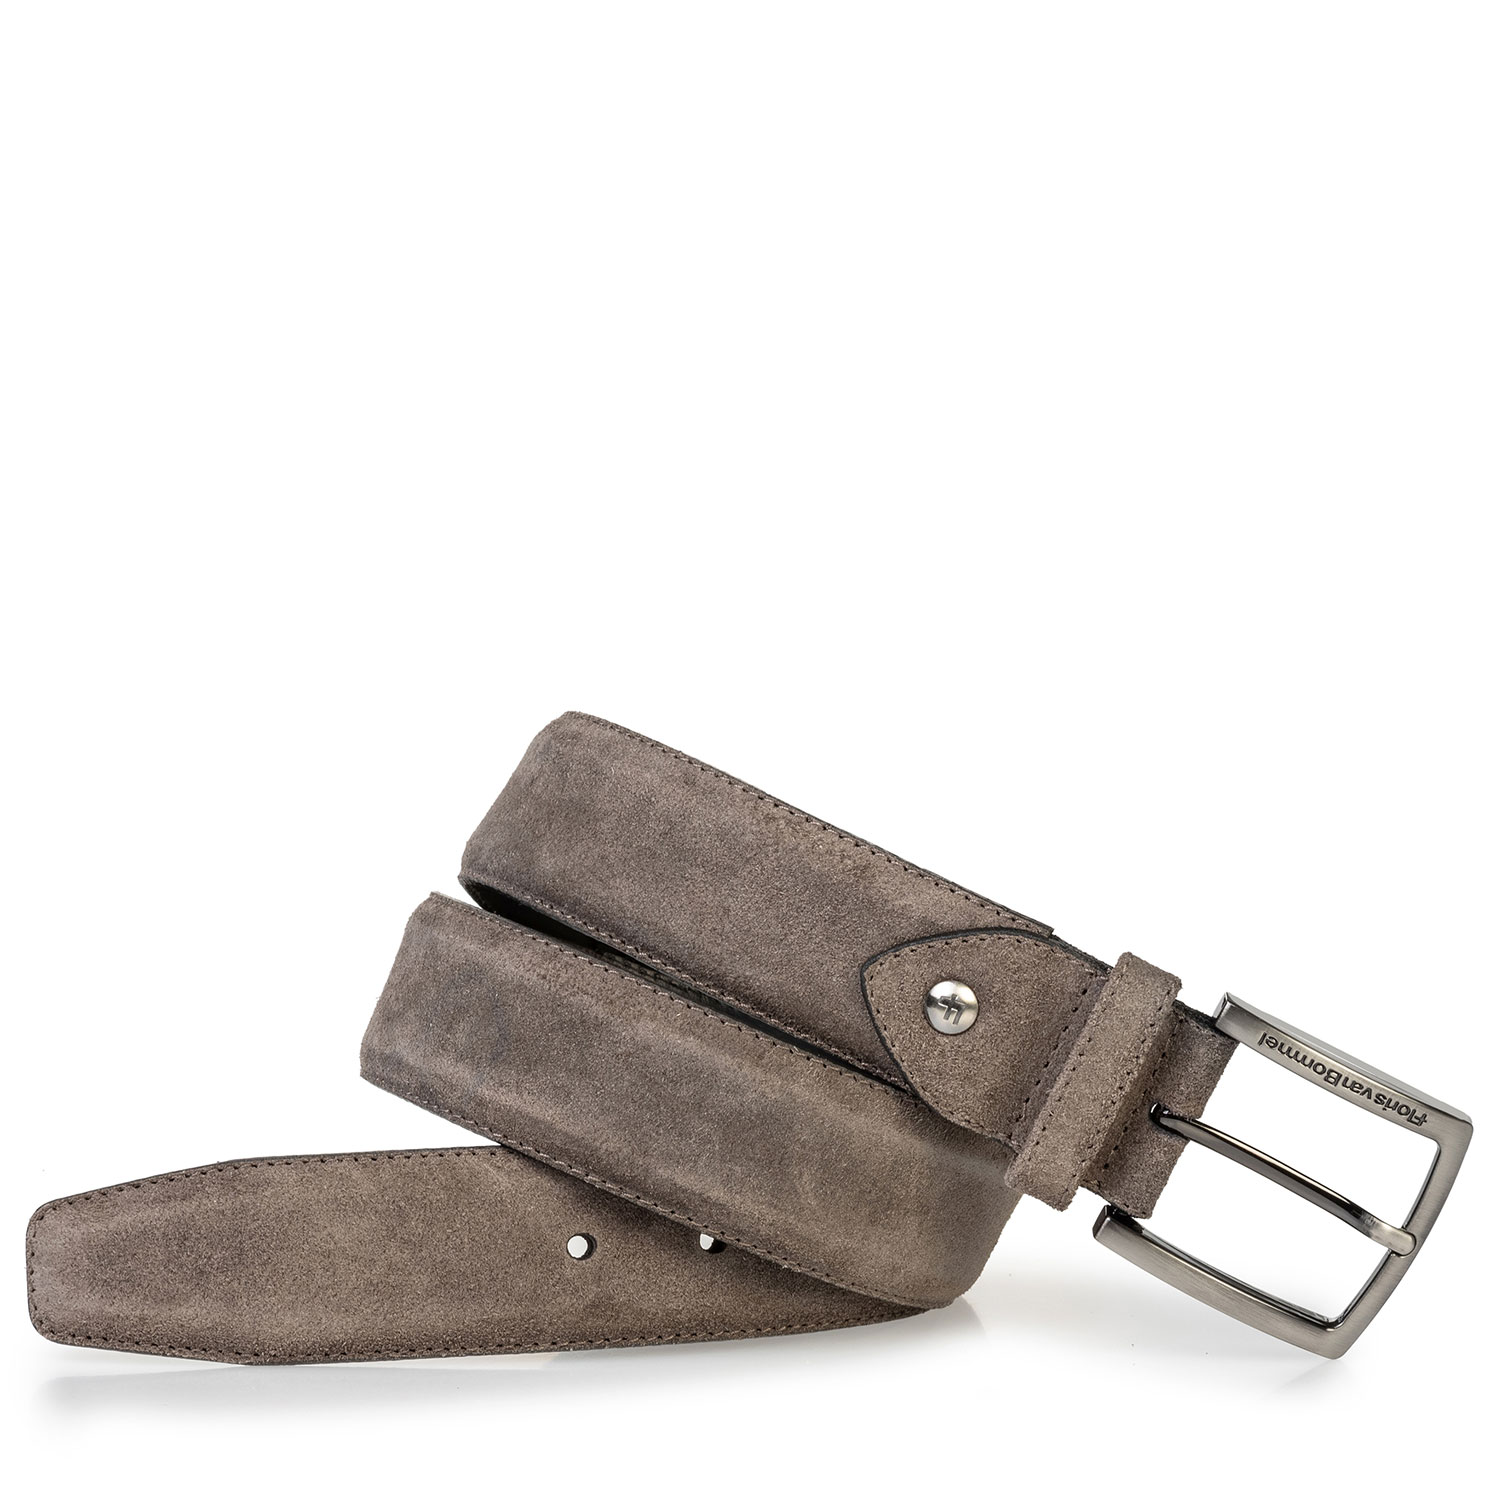 75202/98 - Suede leather belt dark taupe